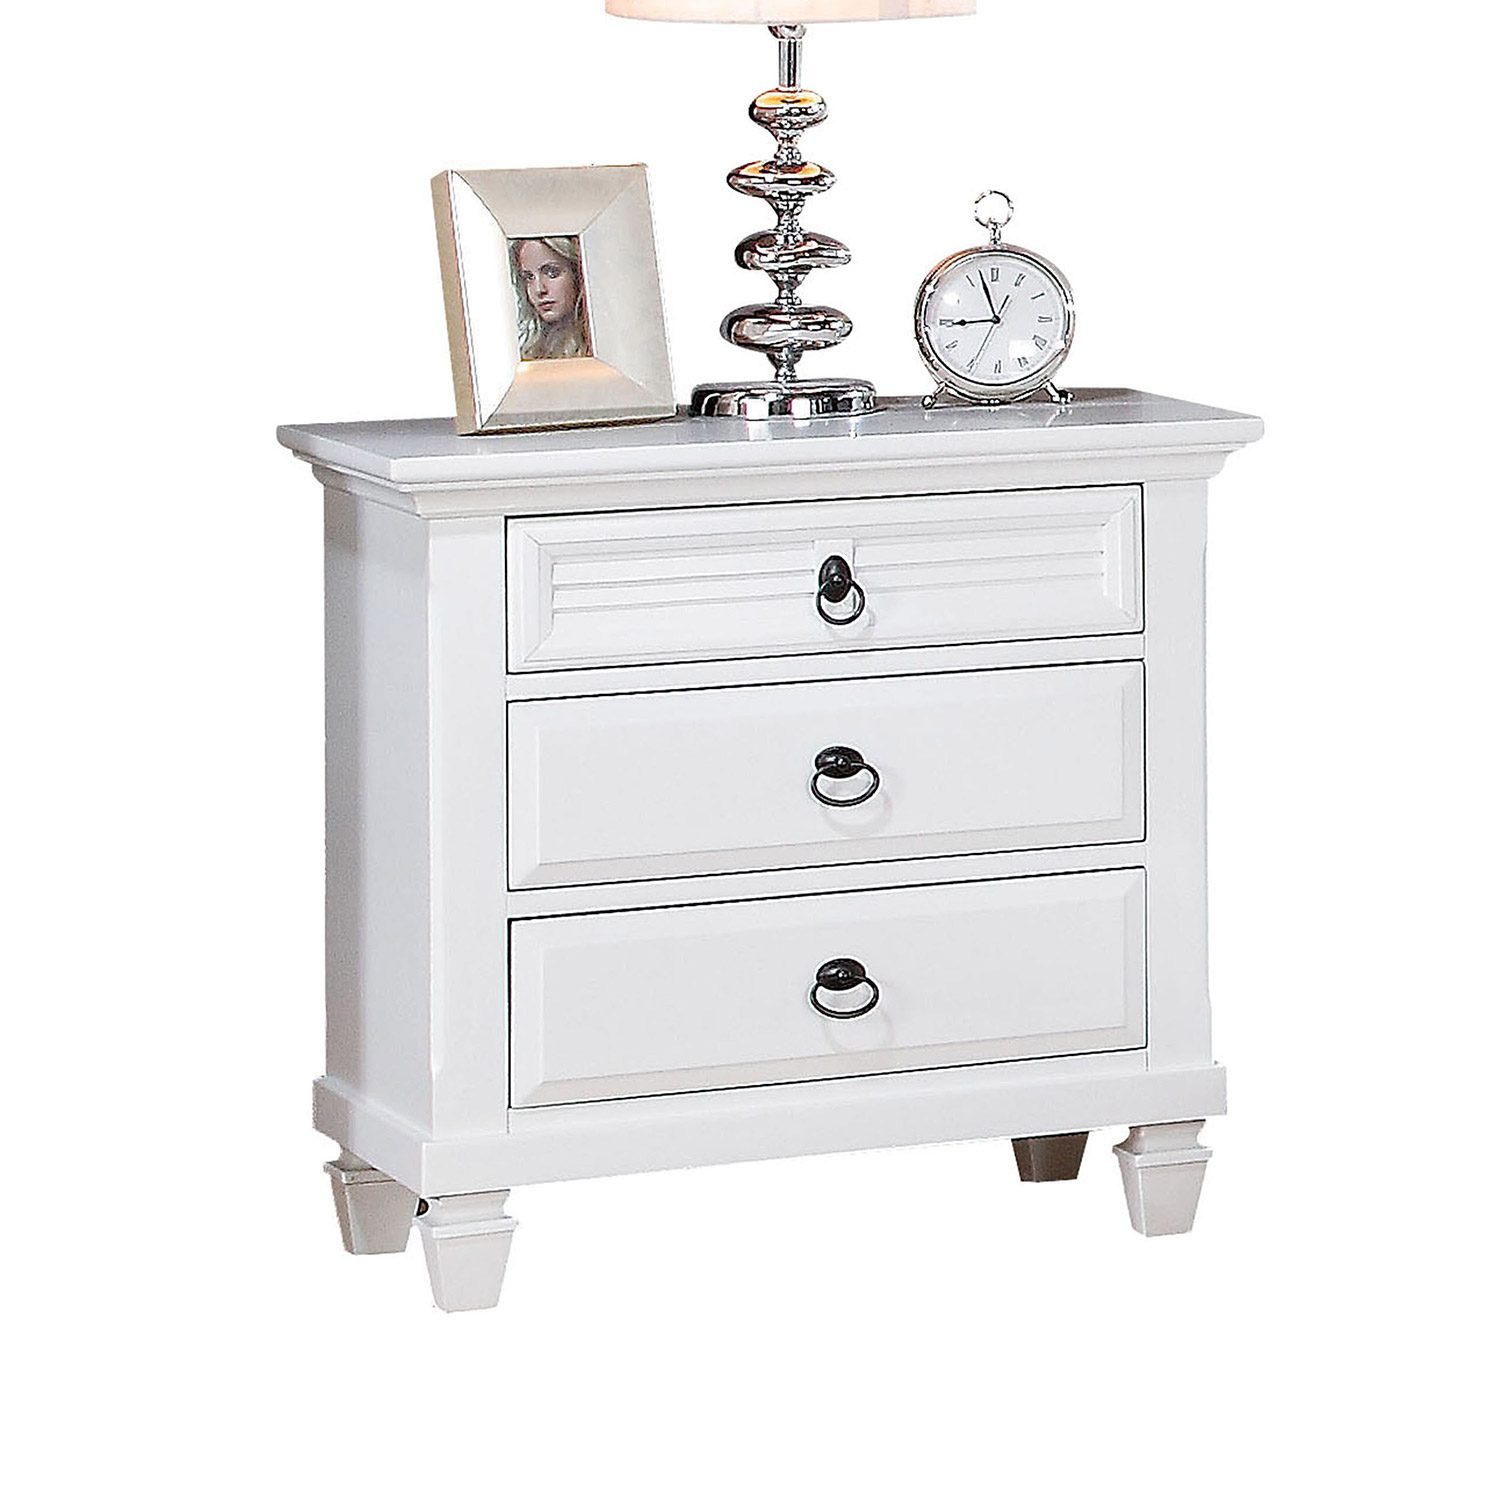 Acme Merivale Nightstand - White